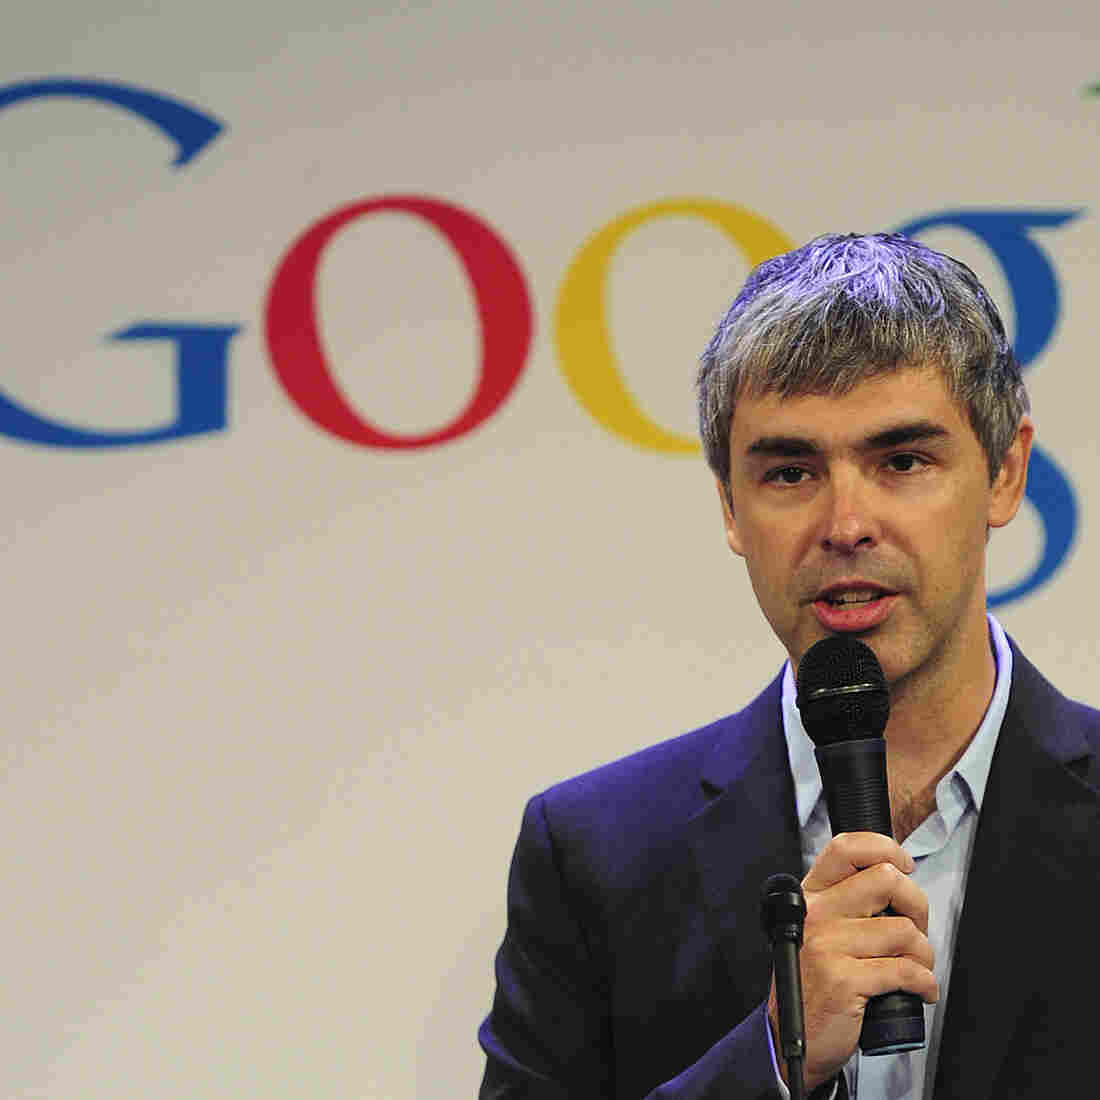 Google CEO Larry Page. What's he going to say now?